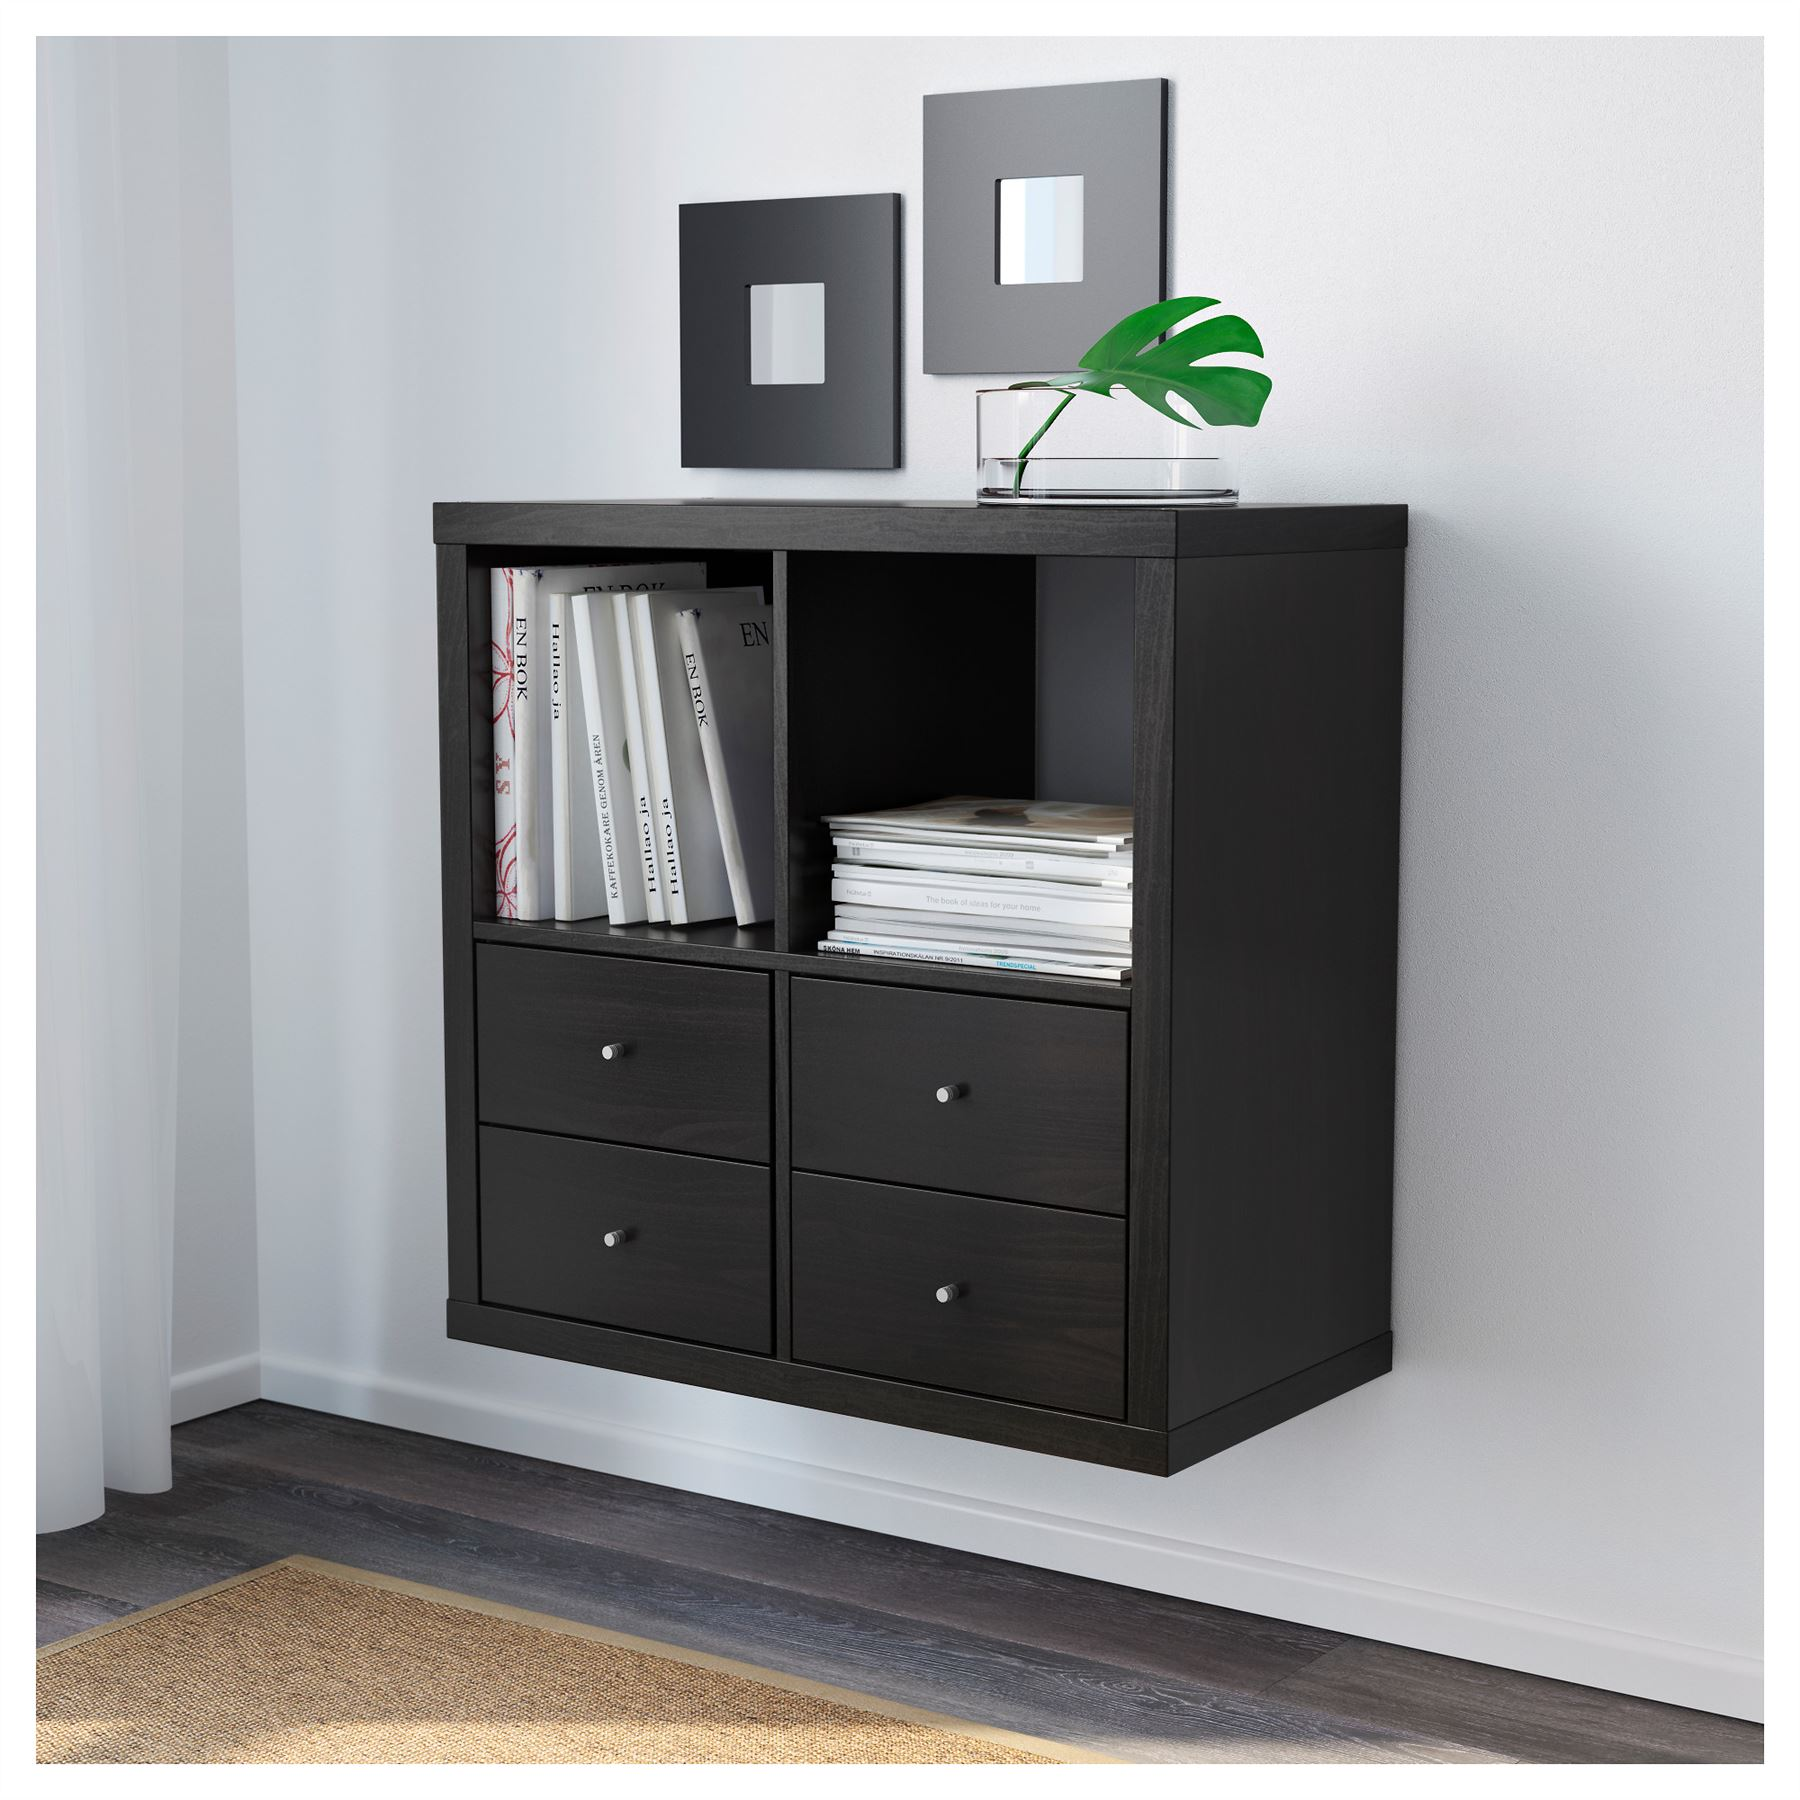 ikea kallax 4 cube storage bookcase square shelving unit. Black Bedroom Furniture Sets. Home Design Ideas